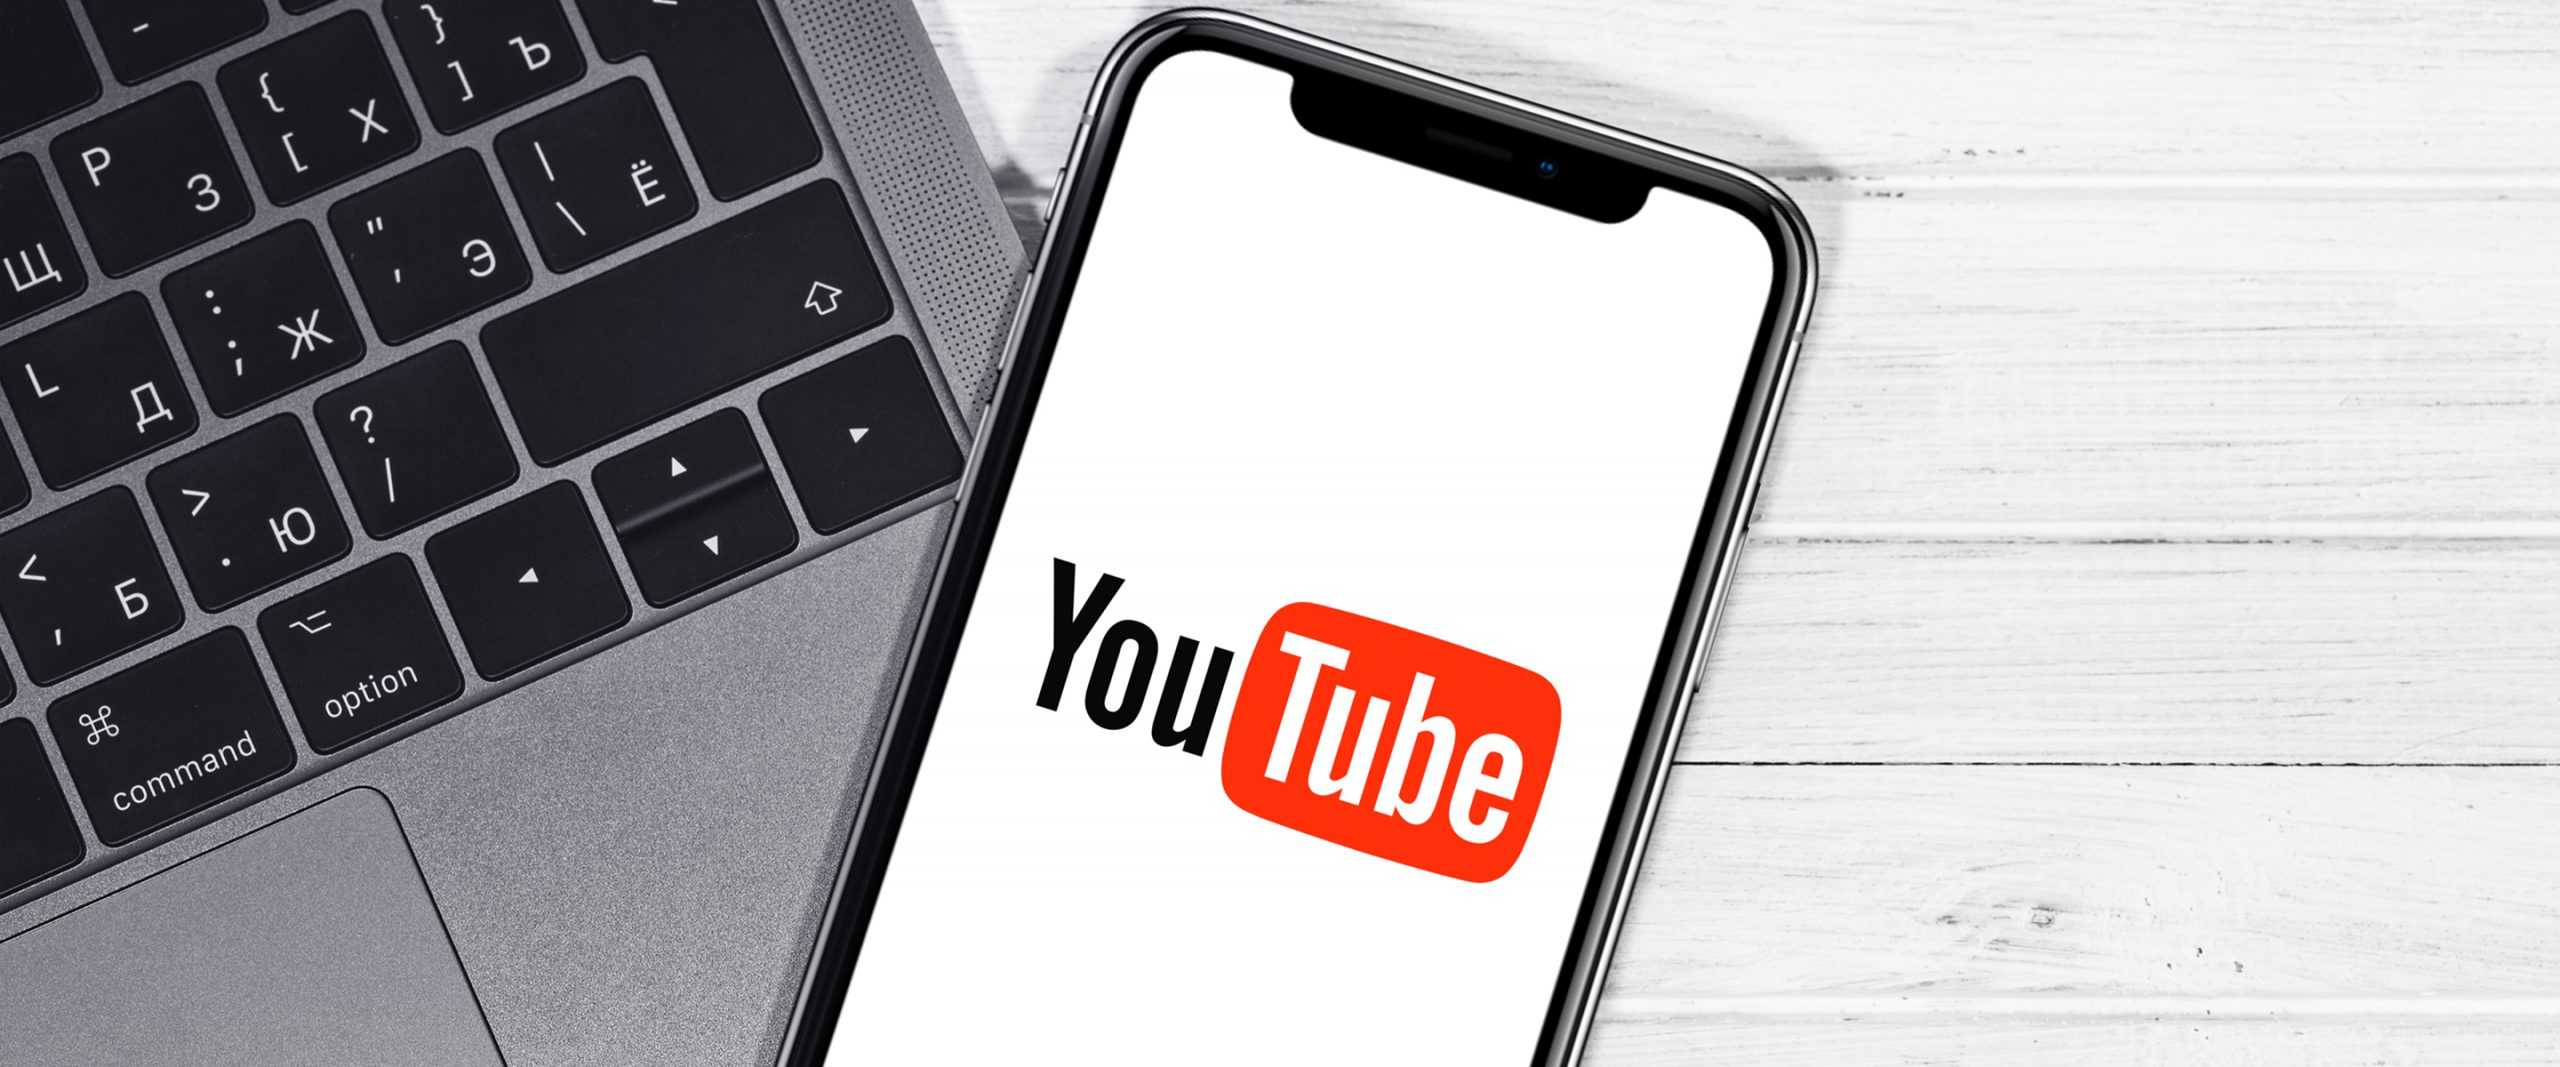 YouTube Launches Audio Ads to Reach Music & Podcast Listeners